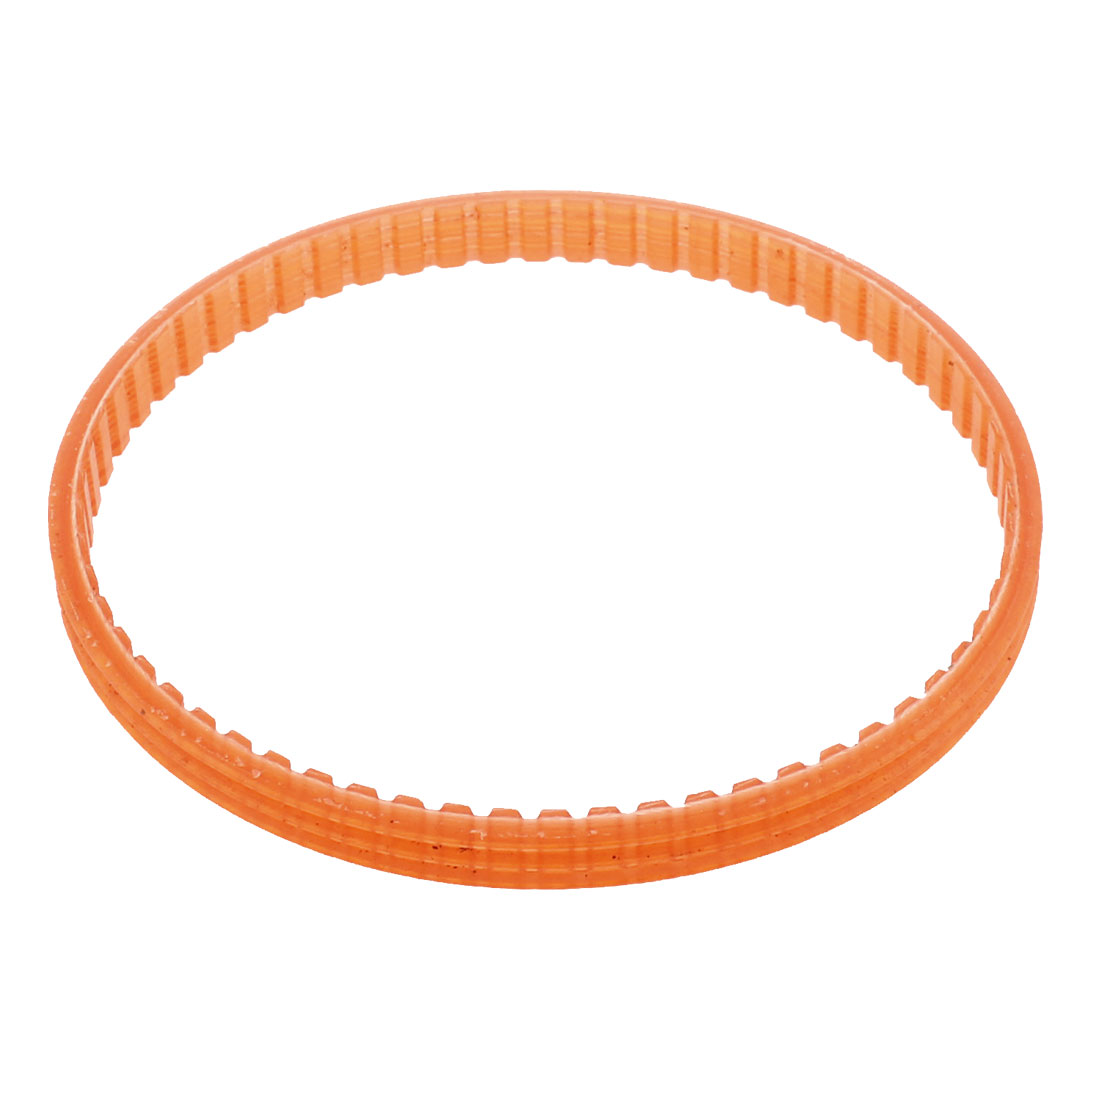 4mm Pitch 62 Tooth 235mm Girth 7mm Width Single Sided Engine PU Timing Pulley Belt Clear Orange